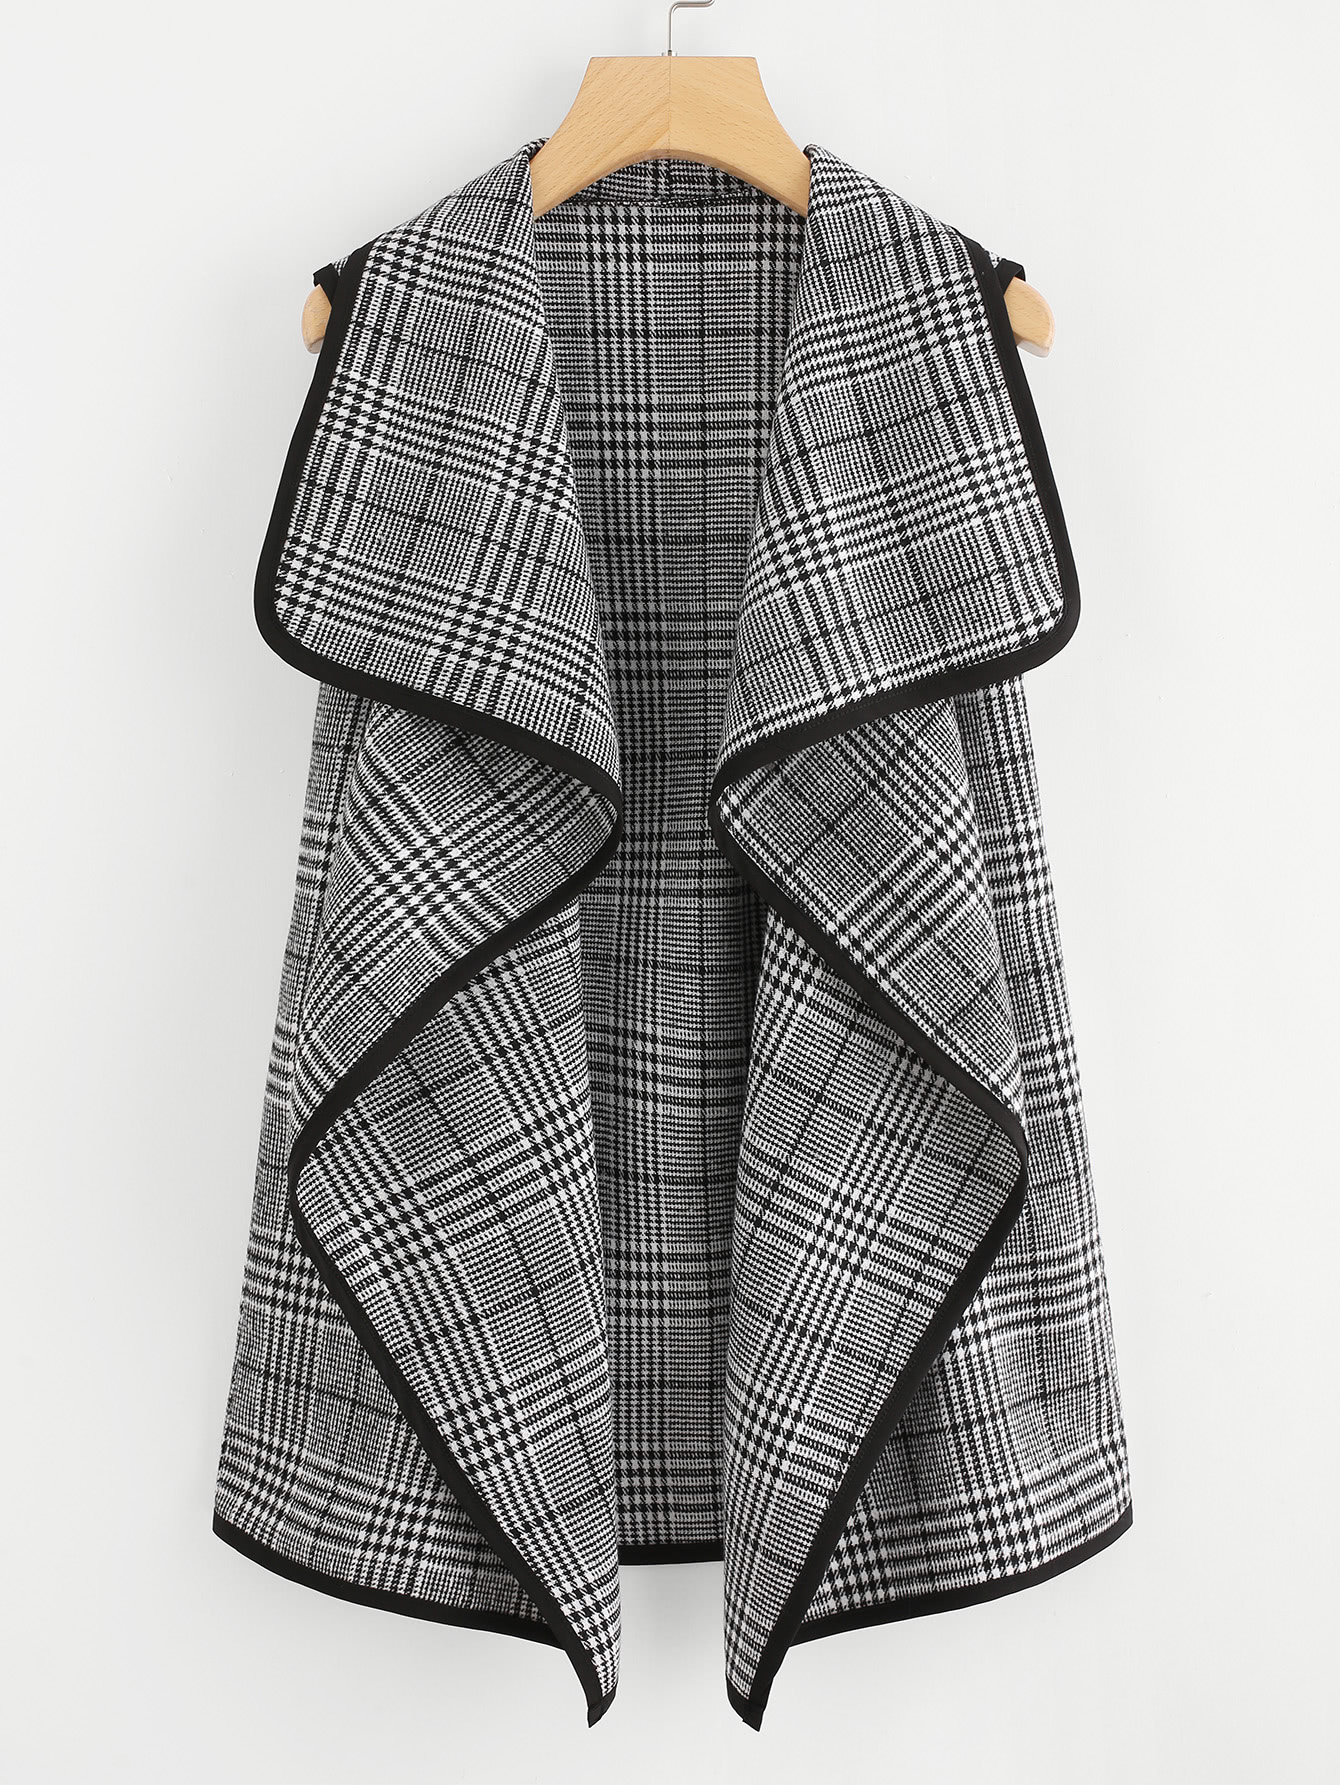 Contrast Binding Wales Check Waterfall Coat split front wales check skirt